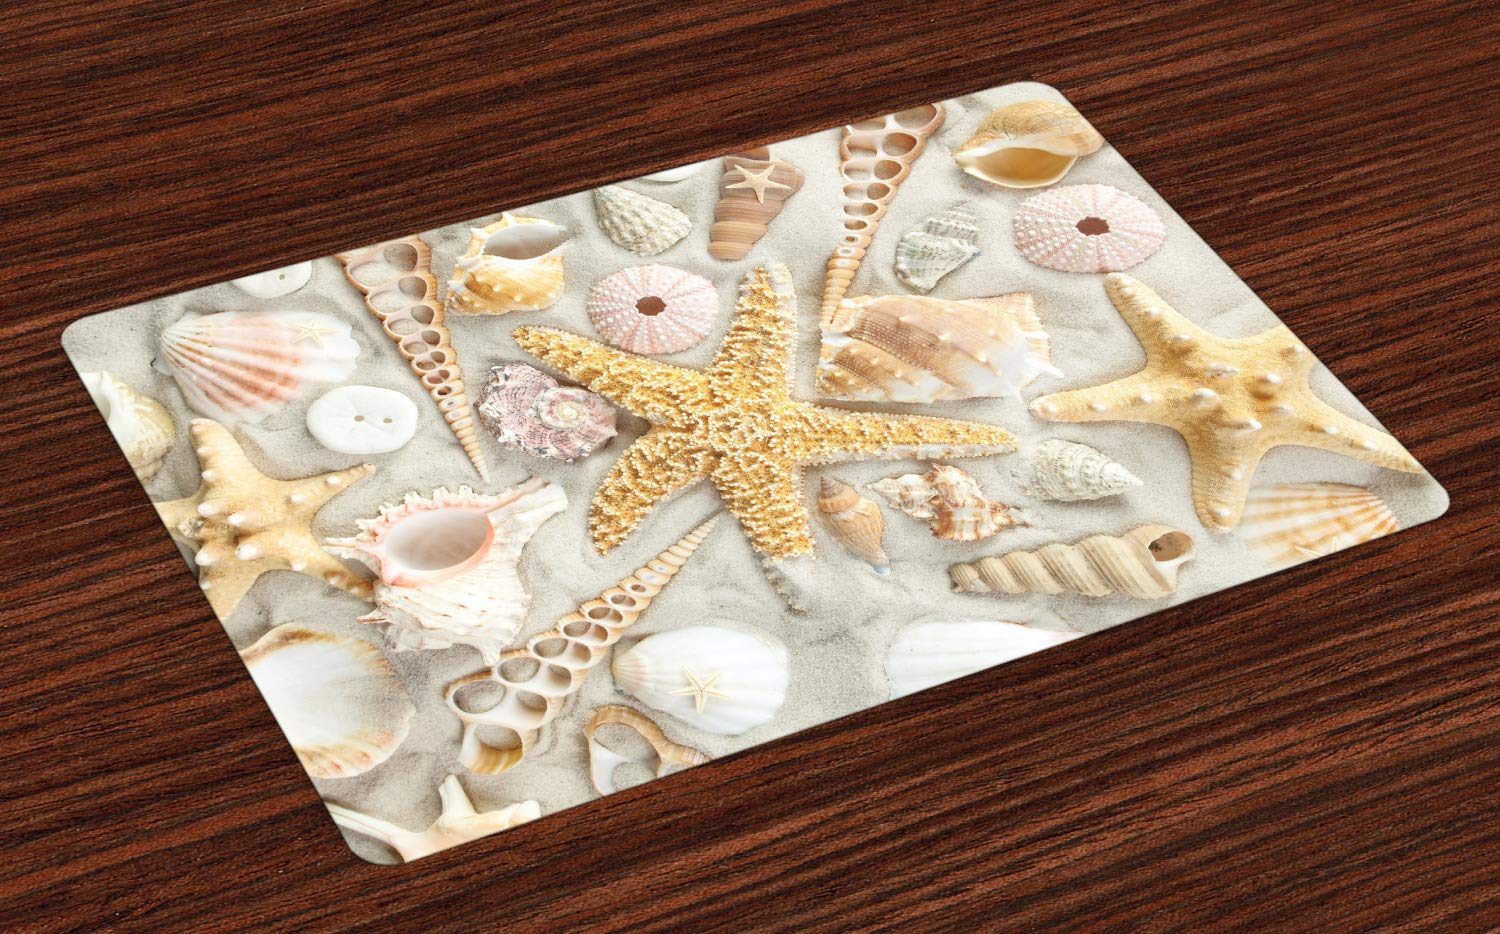 Ambesonne Shell Place Mats Set of 4, Assorted Seashells in Sandy Beach Summer Vacation Nautical Theme Coastal Photograph, Washable Fabric Placemats for Dining Room Kitchen Table Decoration, Multicolor